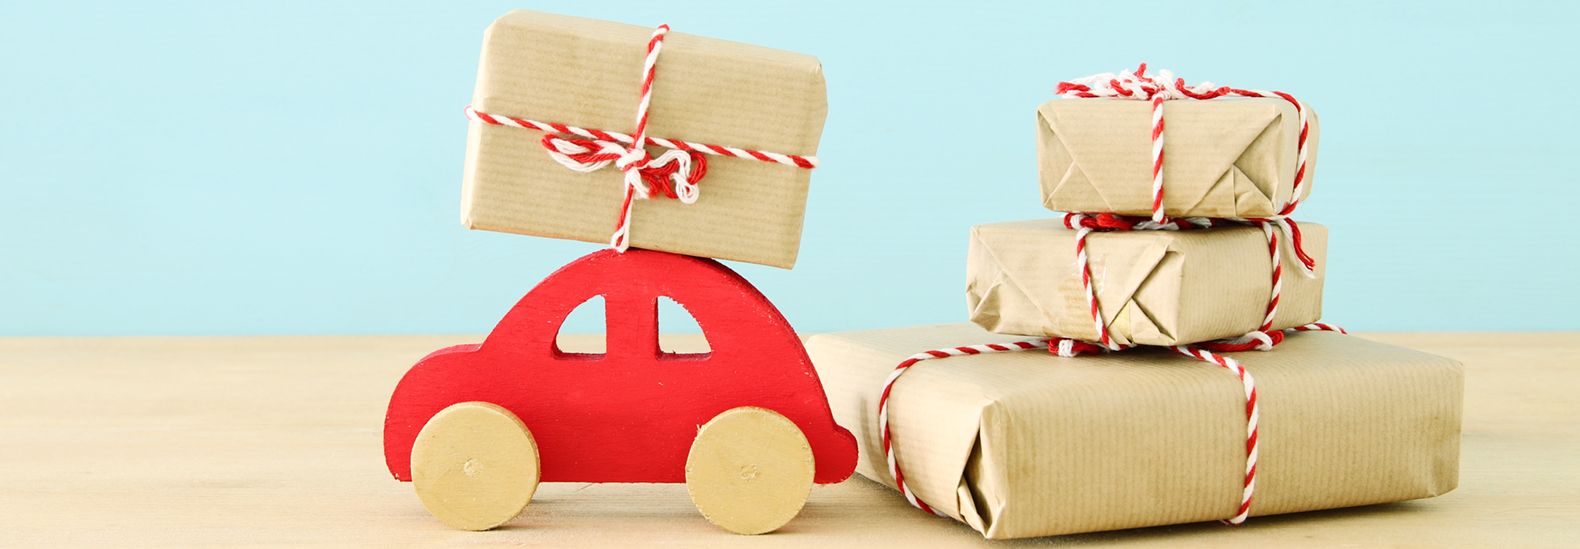 Eco Friendly Gifts For Babies And Kids This Holiday Season